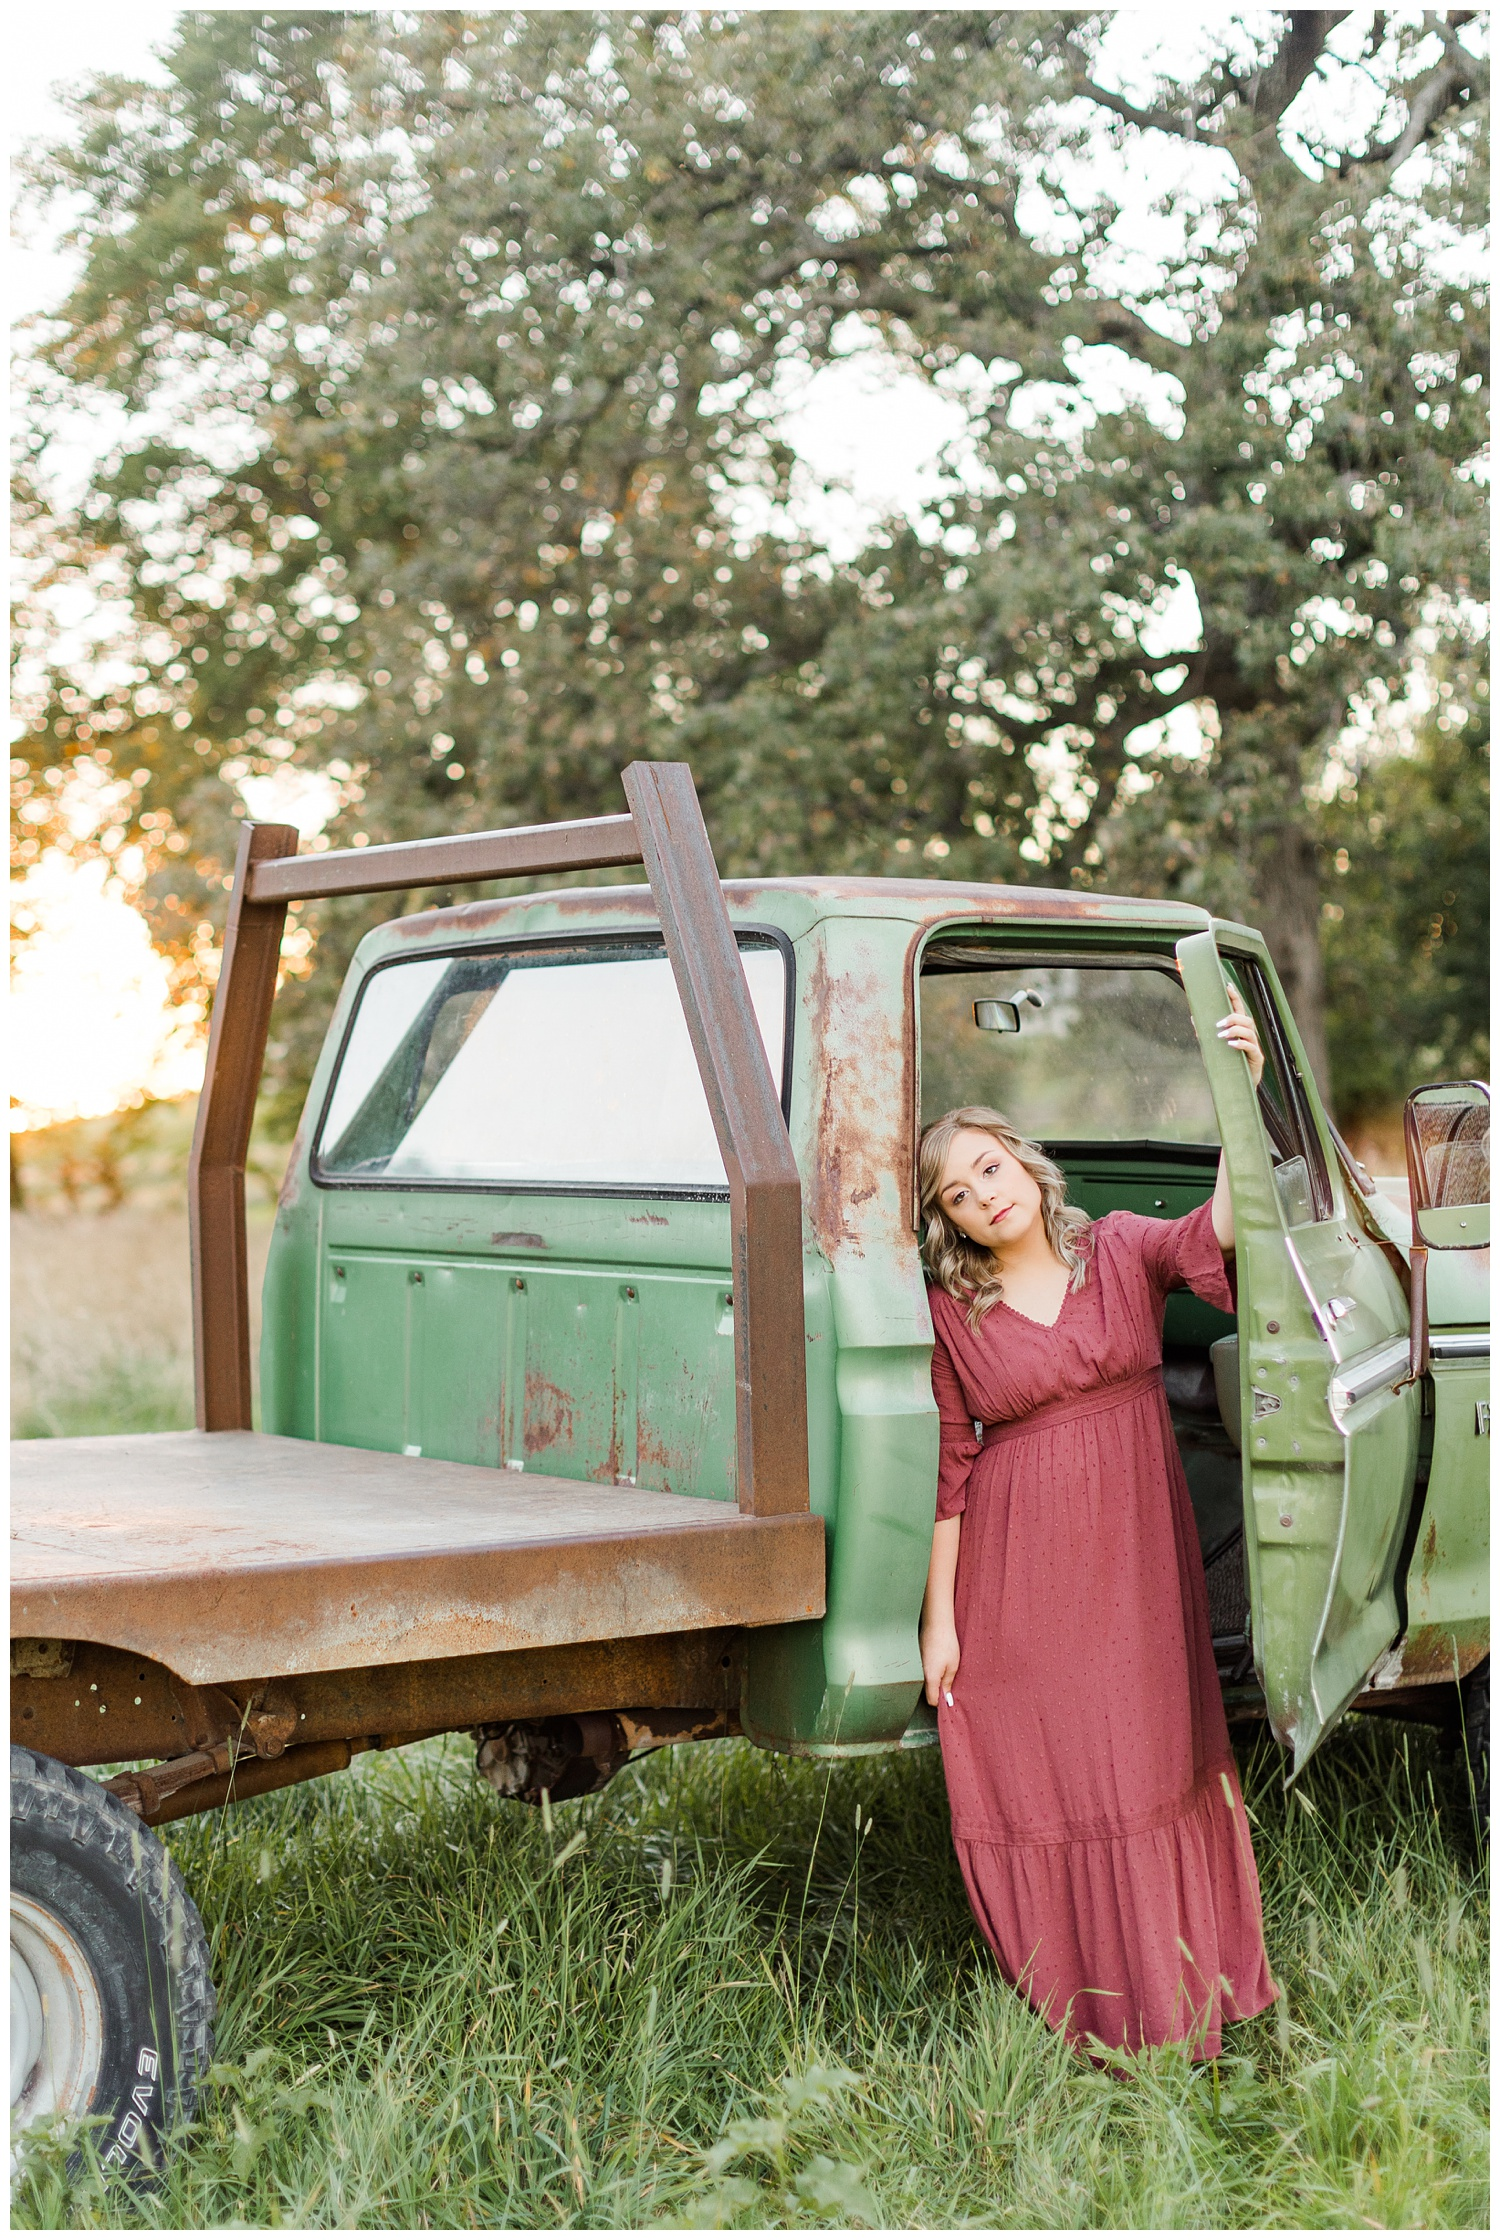 Cloey, wearing a vintage red dress, leans against the passenger doorway of an old rusty truck   CB Studio